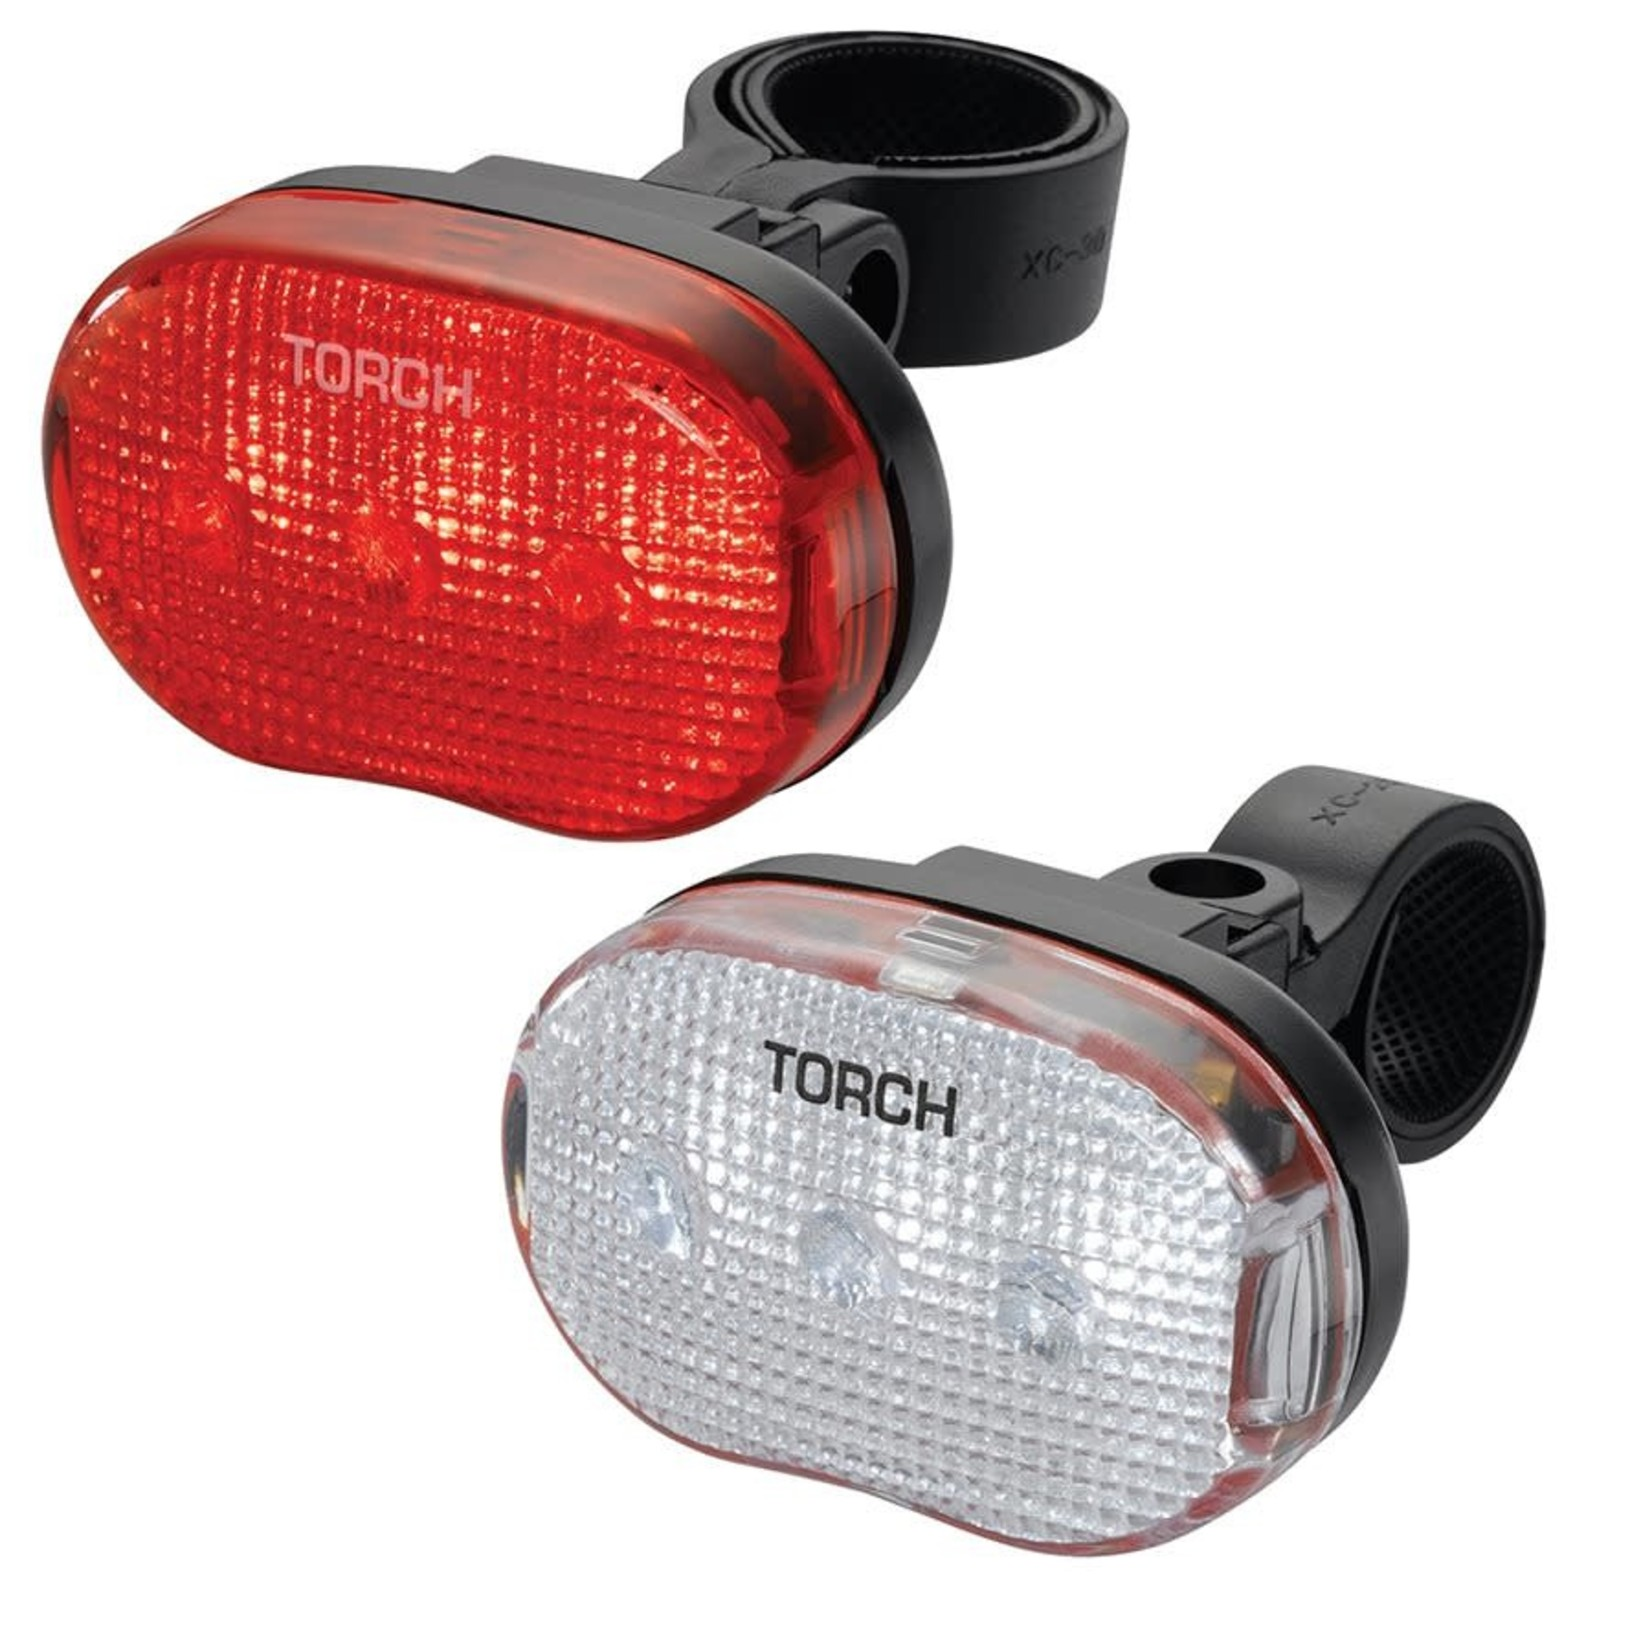 Torch Torch TailBright3x Set